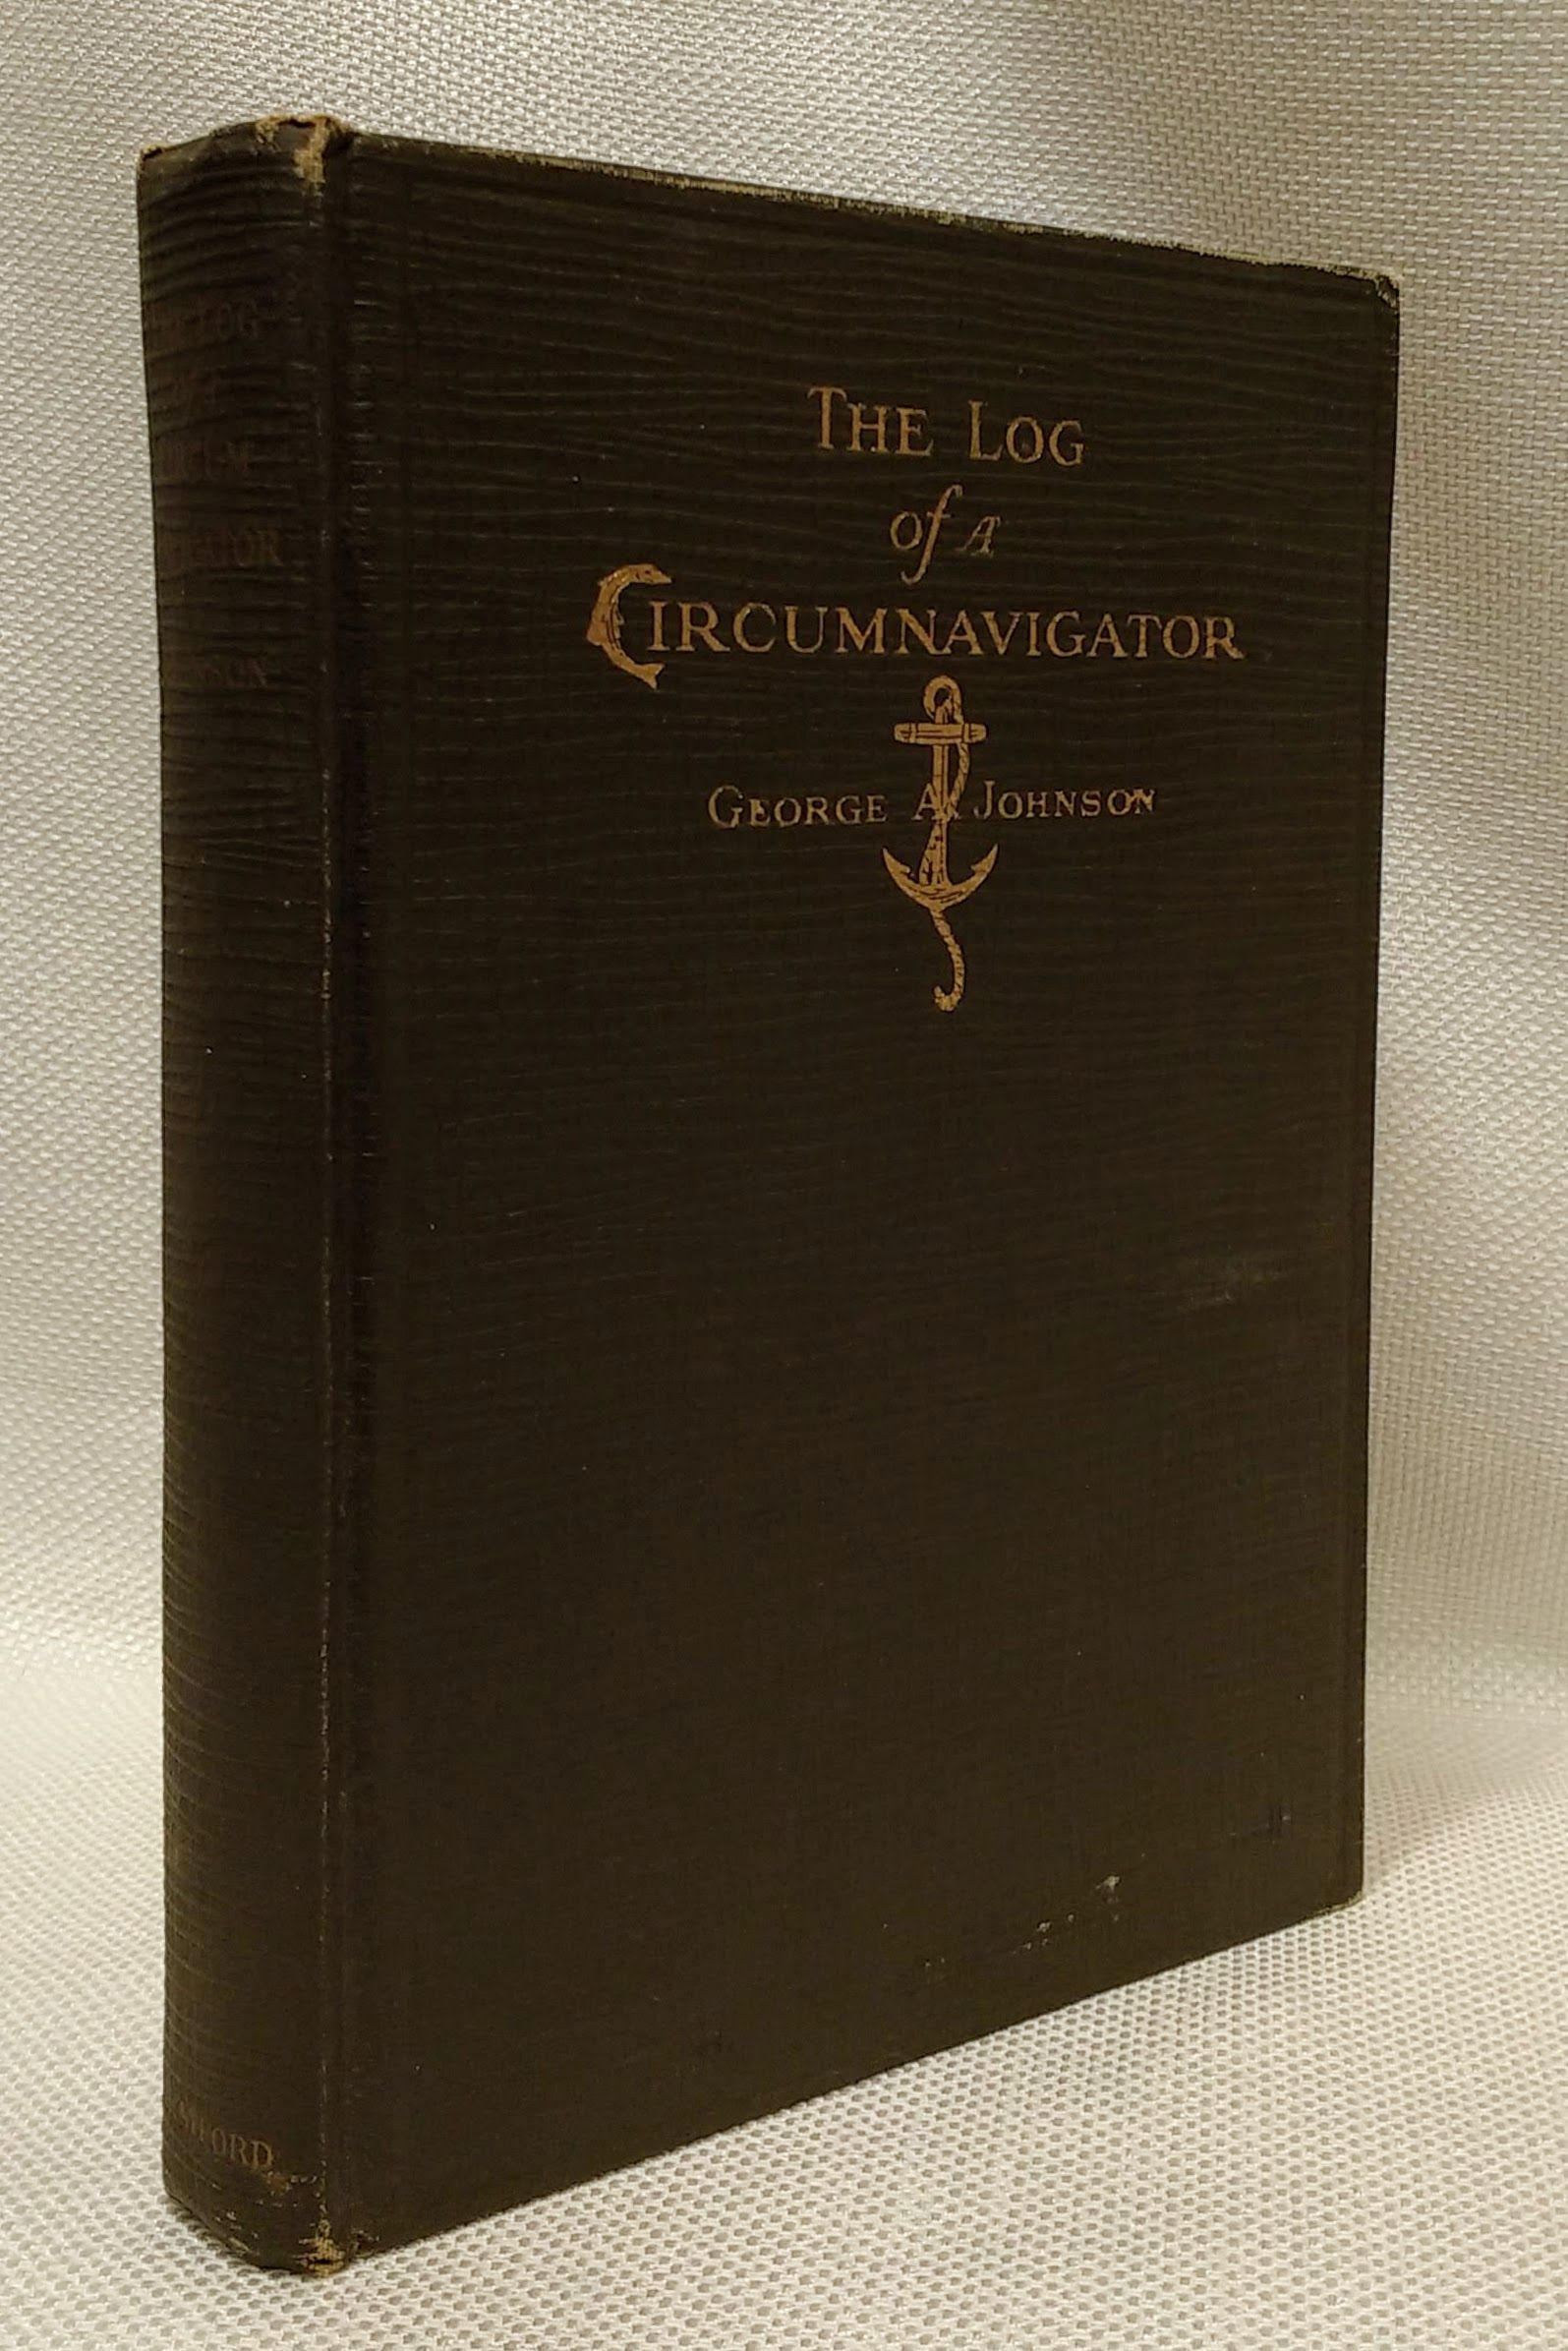 The log of a circumnavigator ;: Being a series of informal narratives descriptive of a trip around the world, Johnson, George Arthur